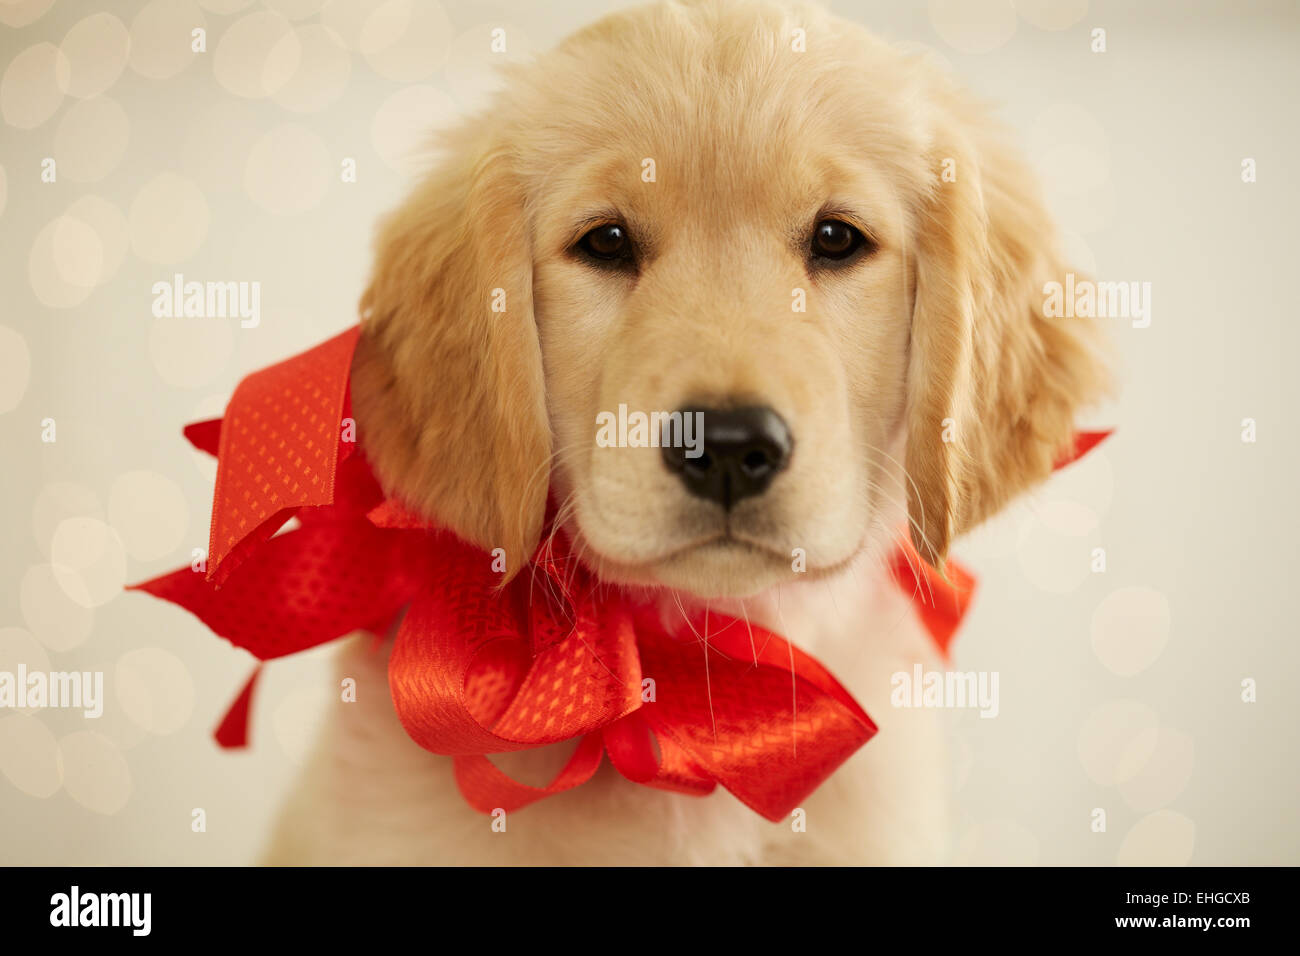 Golden Retriever Puppy With Red Bow Stock Photo 79652003 Alamy